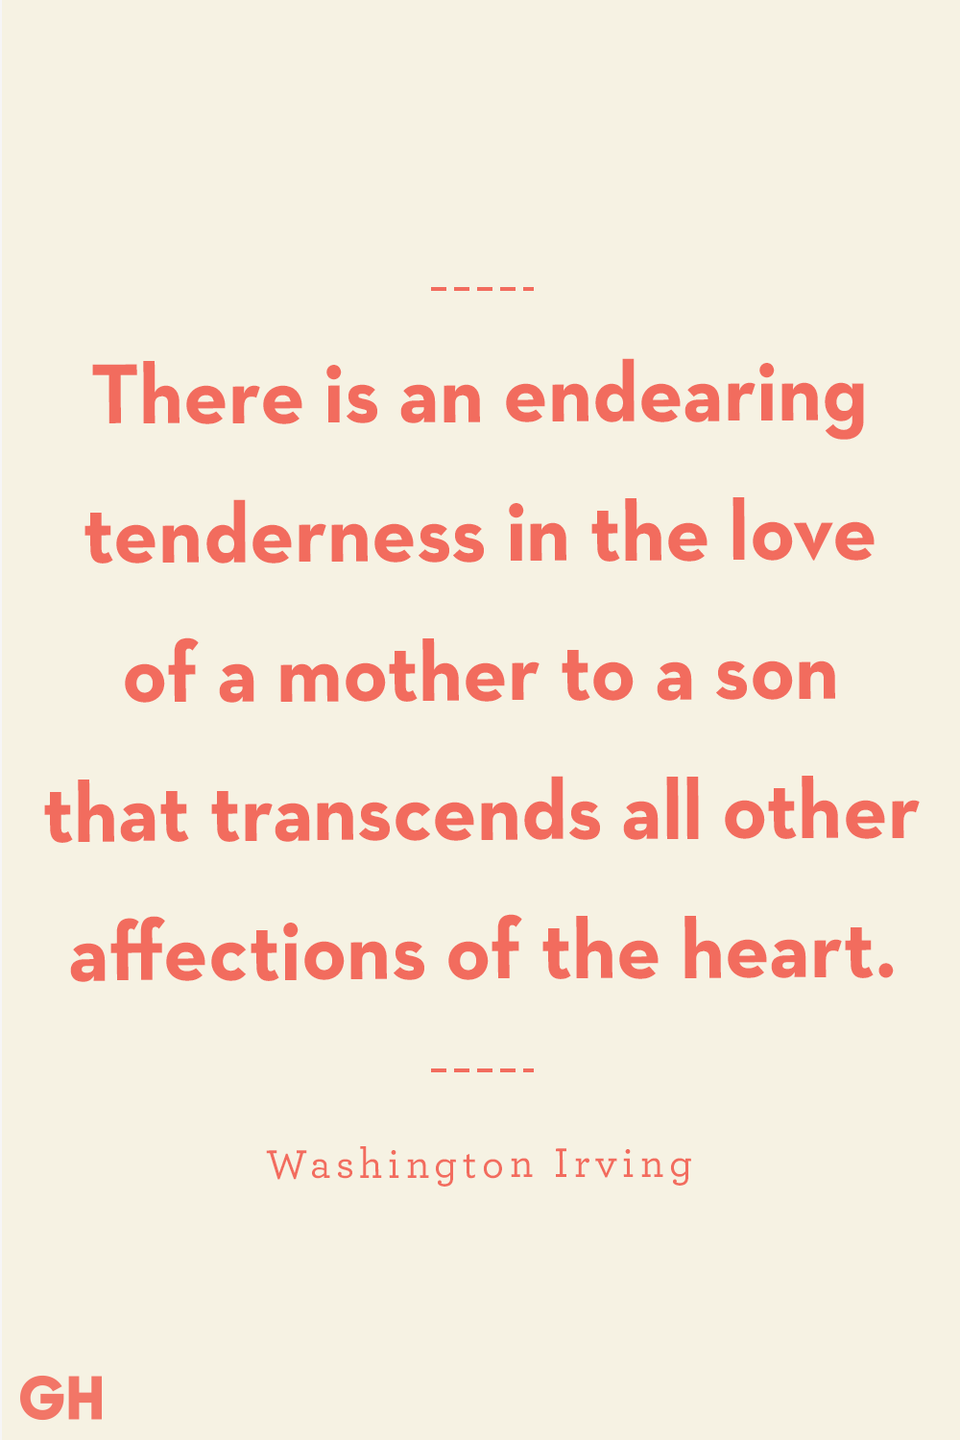 <p>There is an endearing tenderness in the love of a mother to a son that transcends all other affections of the heart.</p>